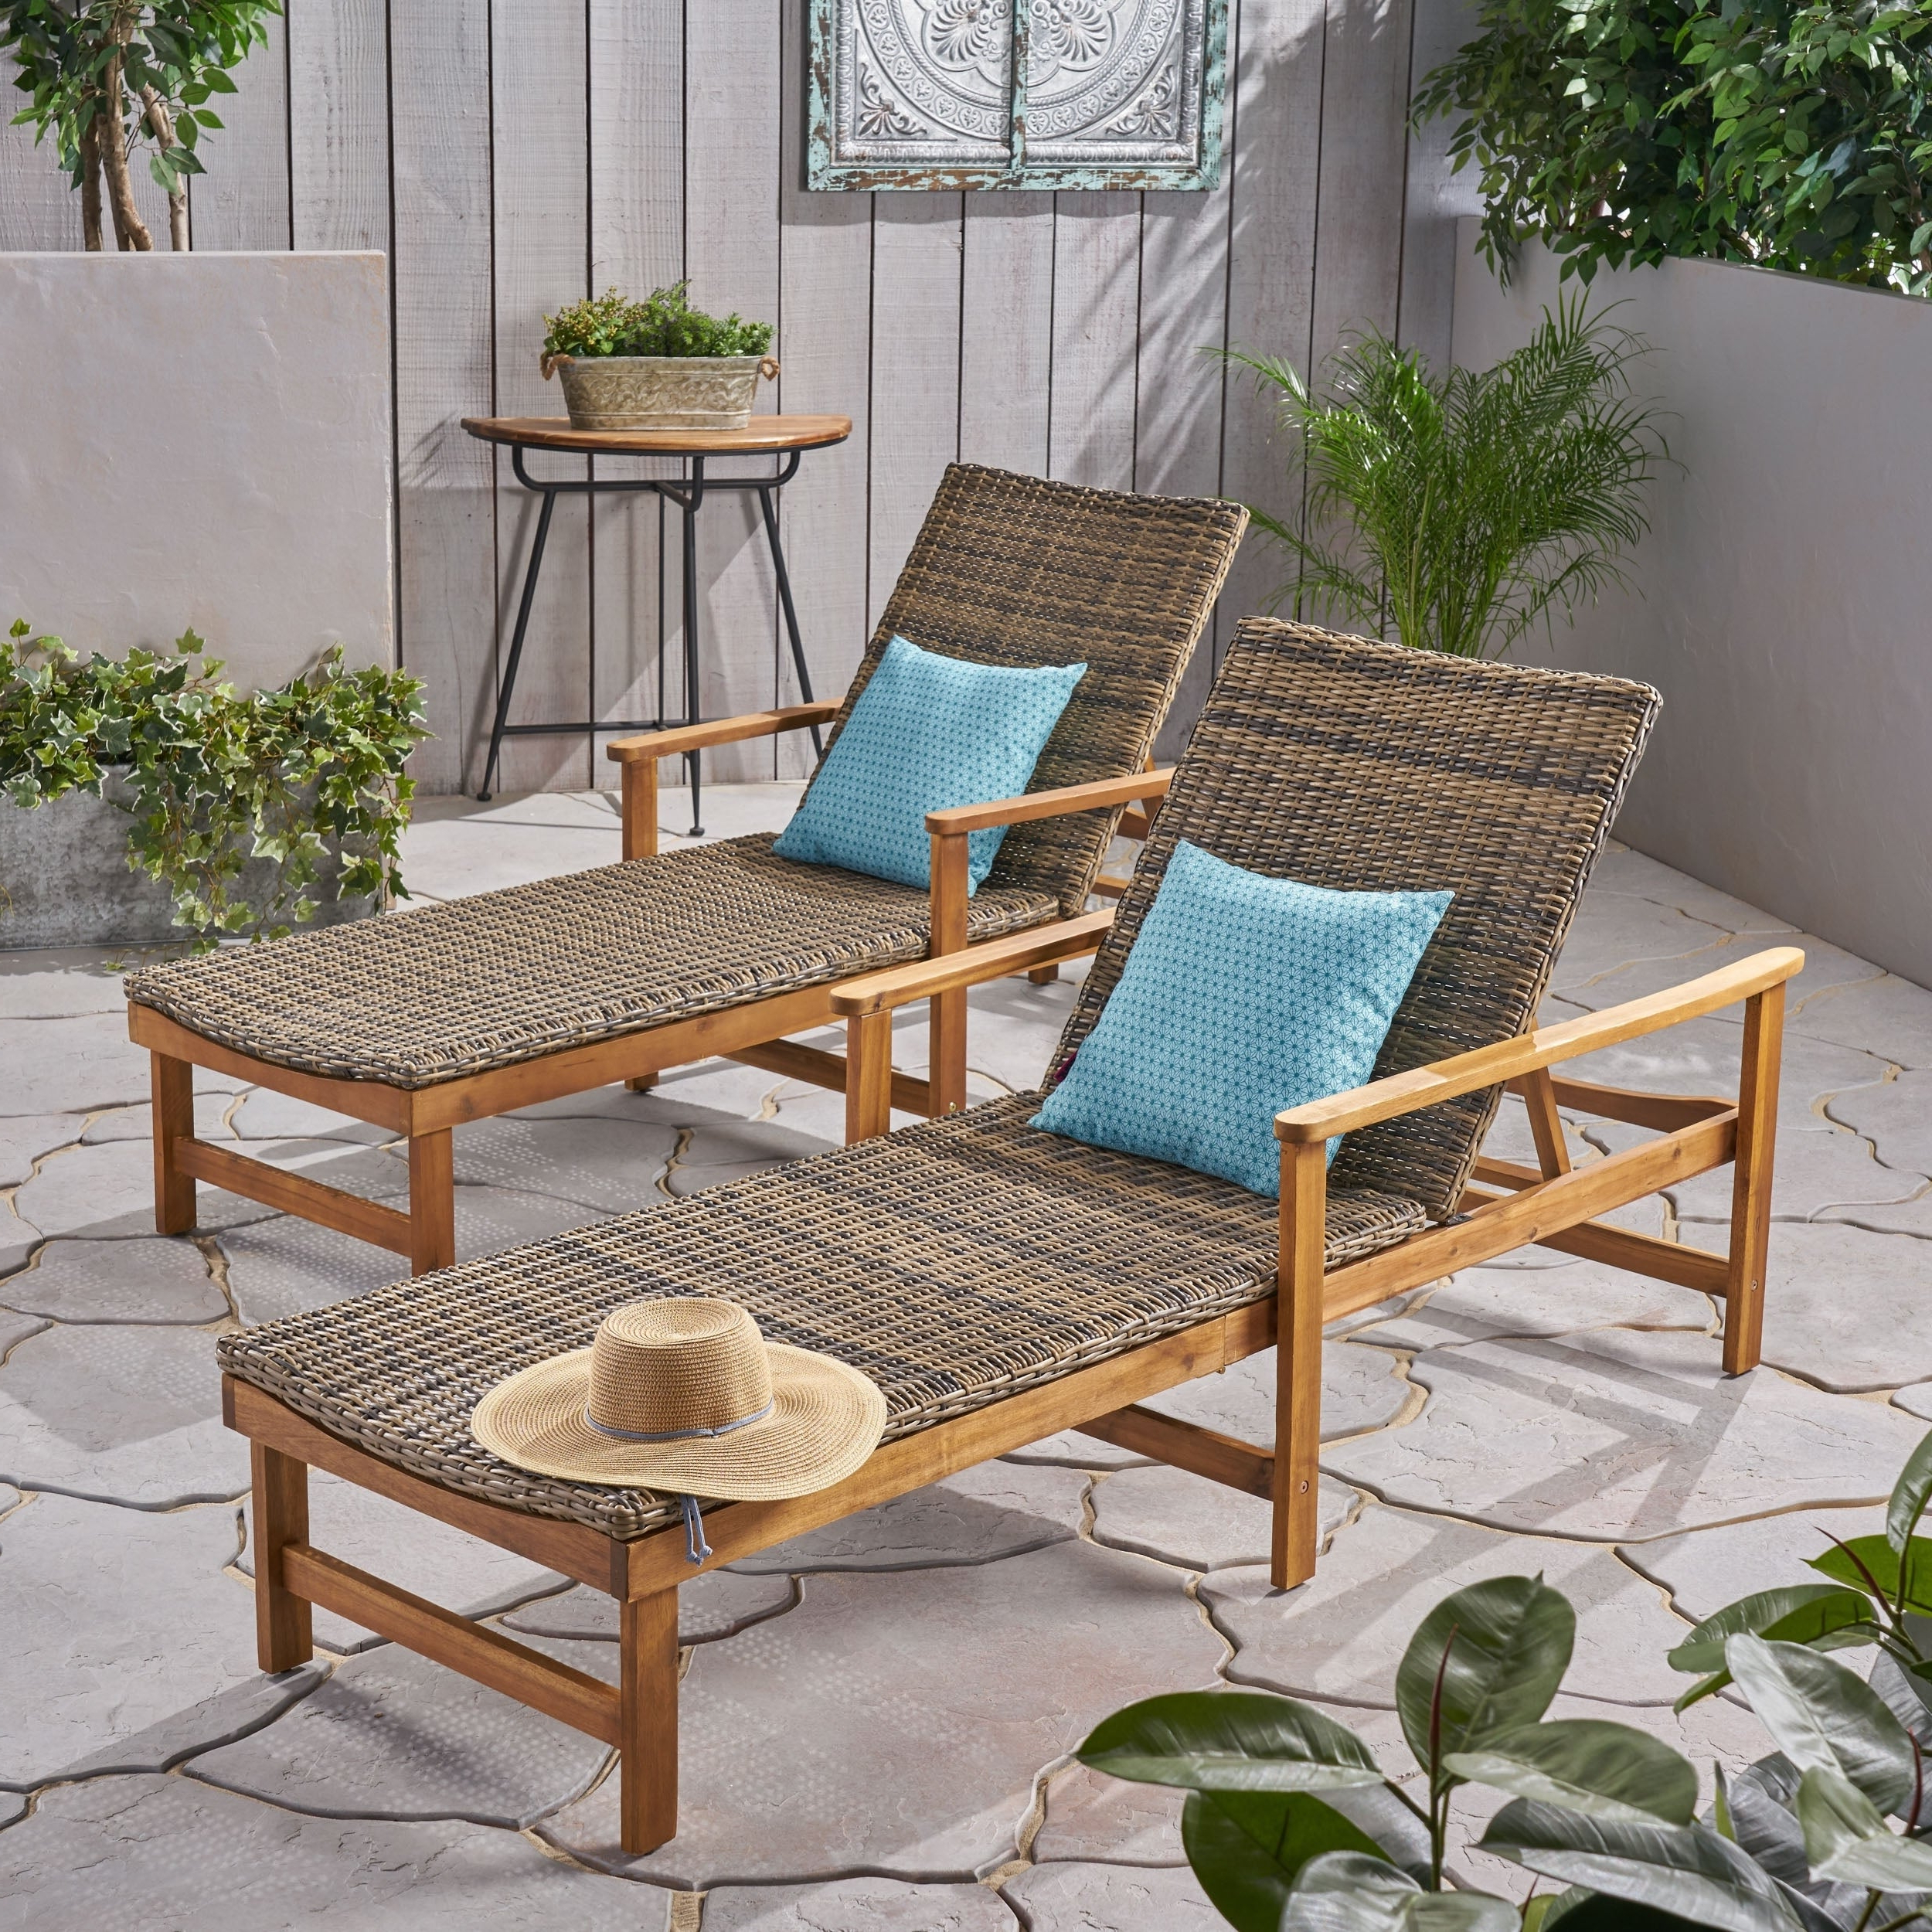 Hampton Outdoor Chaise Lounges Acacia Wood And Wicker (Set Of 2) Christopher Knight Home Throughout Favorite Outdoor Rustic Acacia Wood Chaise Lounges With Wicker Seat (View 3 of 25)